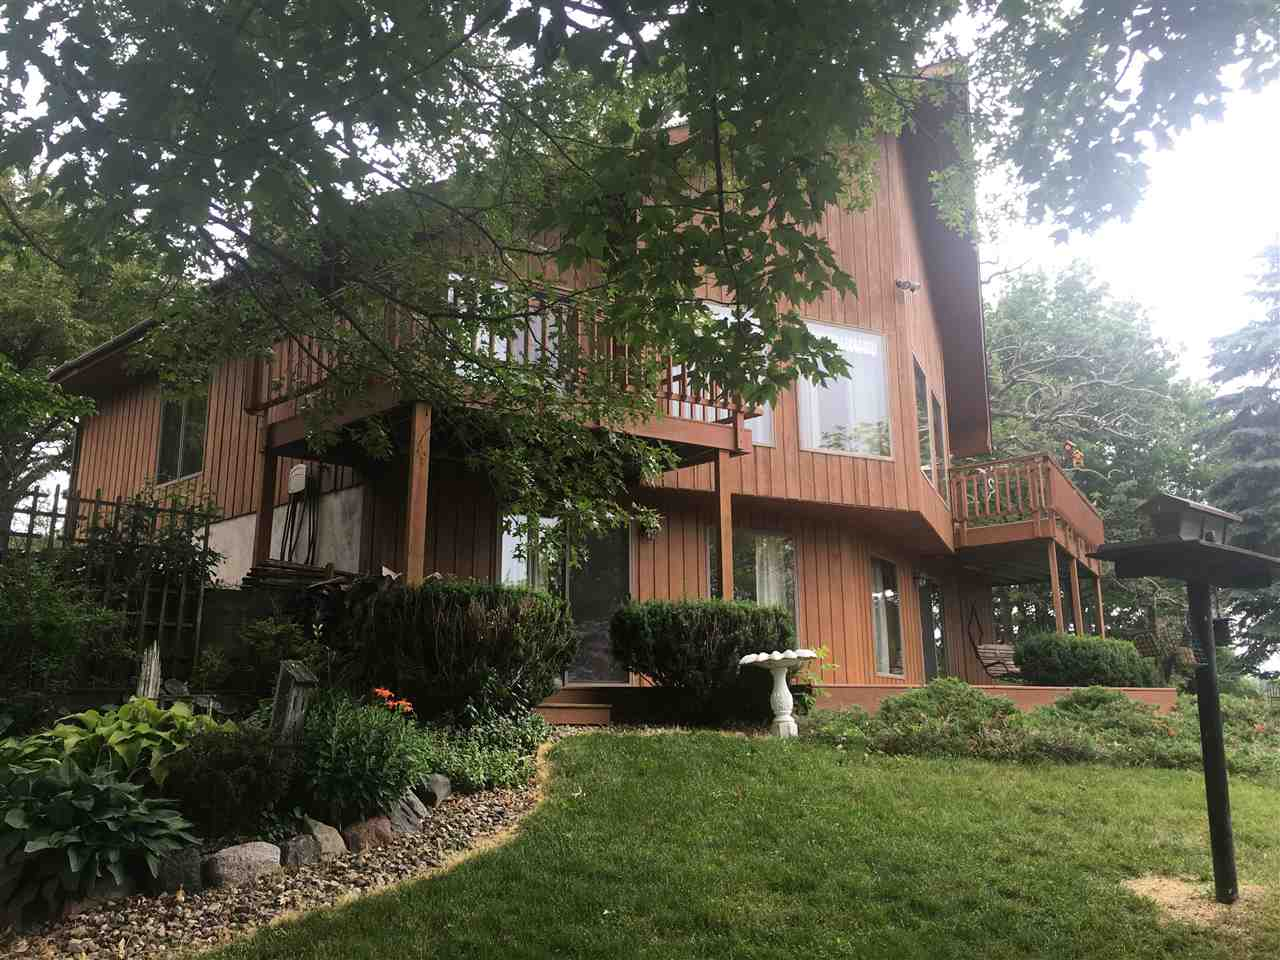 S3174 Lake Shore Rd, Excelsior, WI 53959